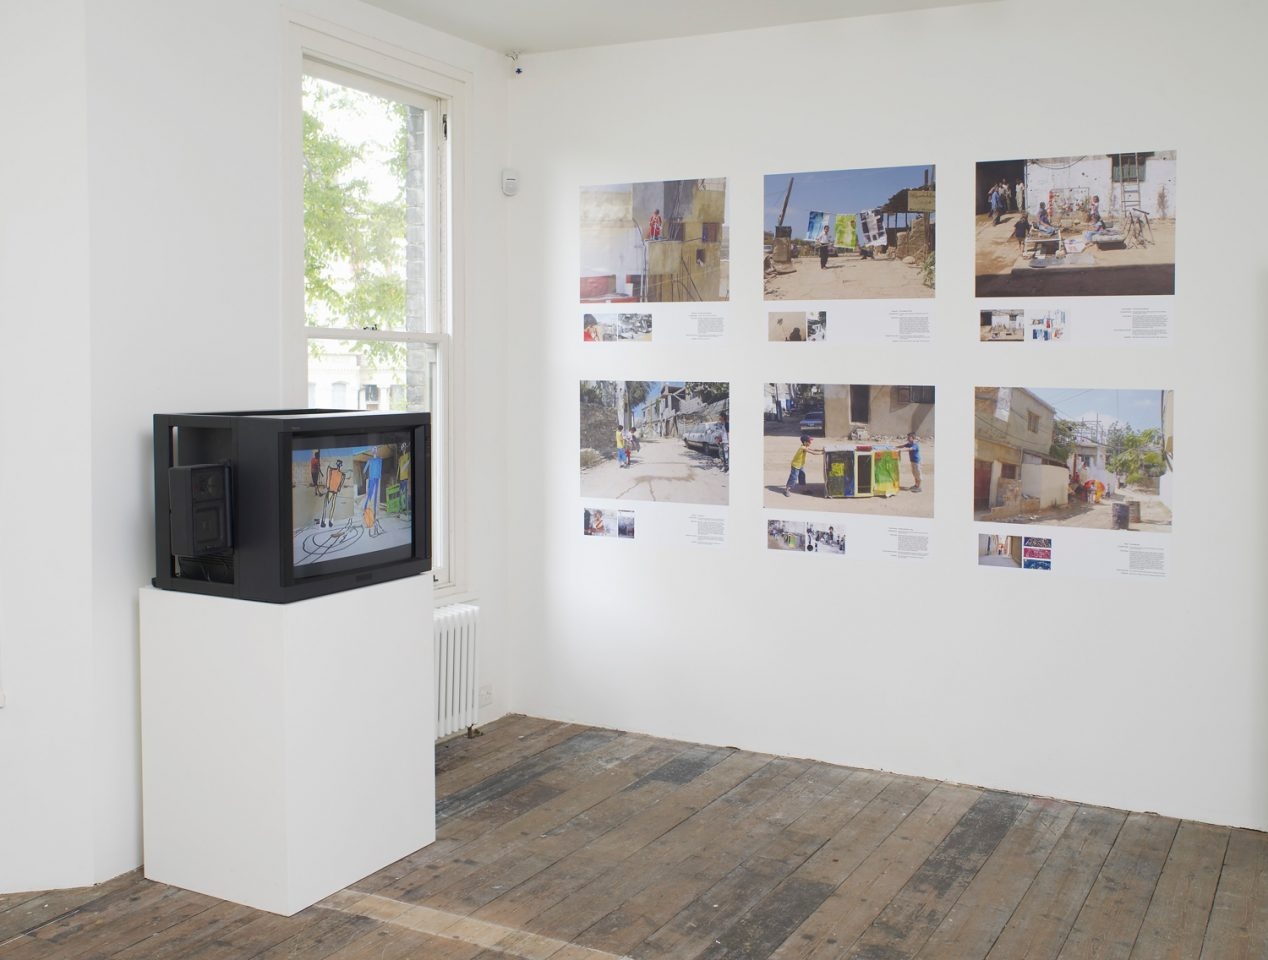 Installation view of Febrik's 2012 Play, I Follow You in the First Floor Galleries. Photo: Andy Keate